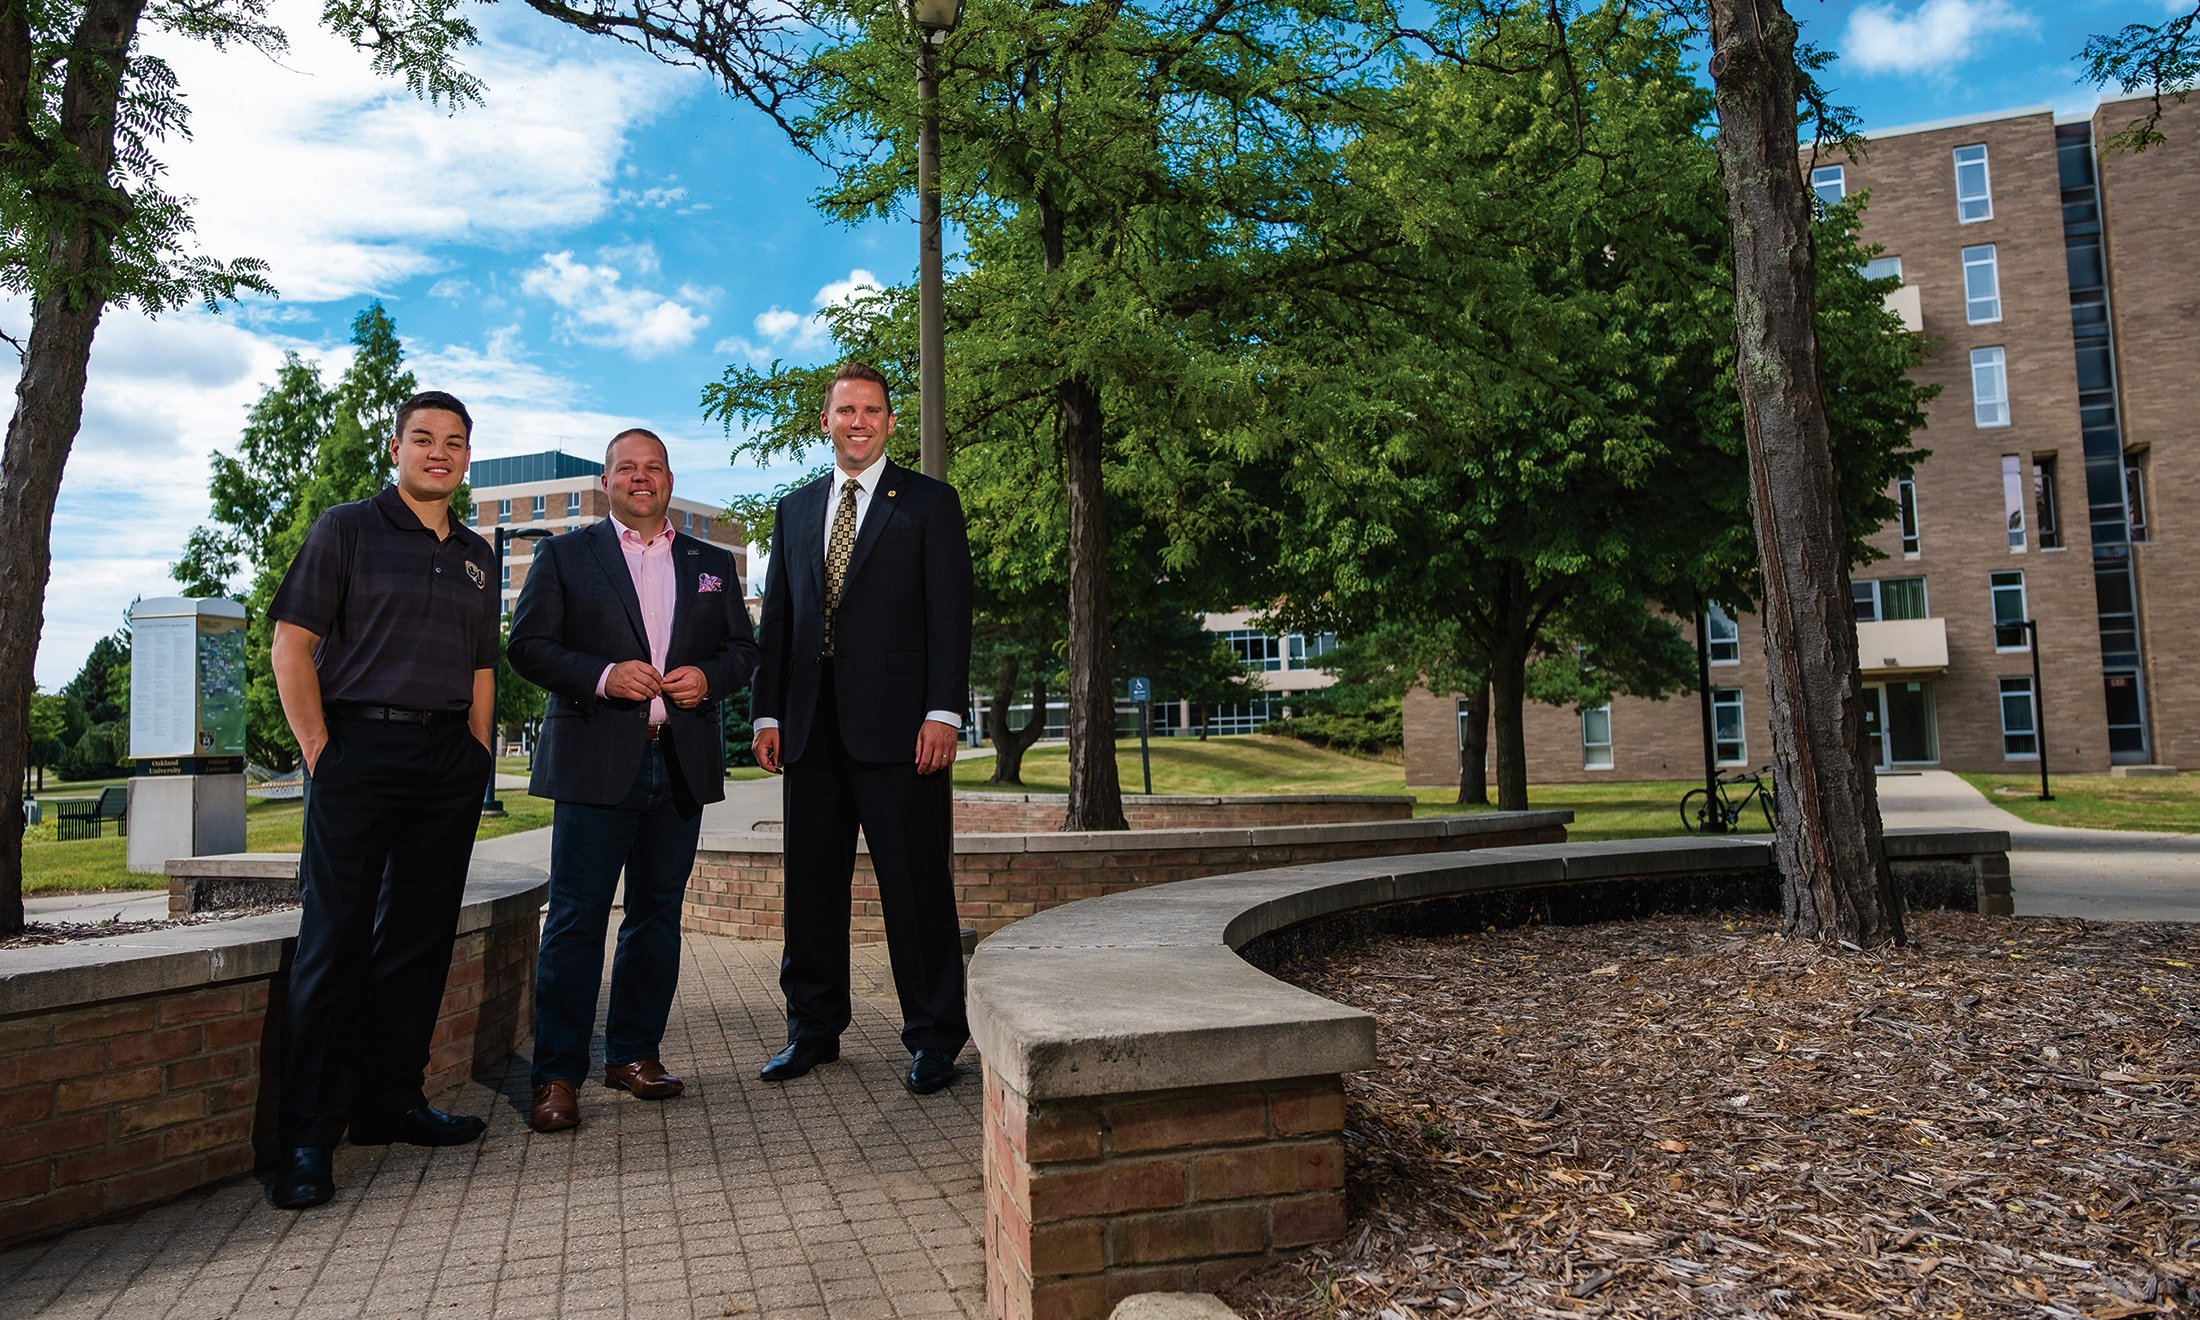 Mayor Rob Ray of Auburn Hills, Mayor Bryan Barnett of Rochester Hills  and Mayor Kevin McDaniel of Rochester stand together on OU's campus.